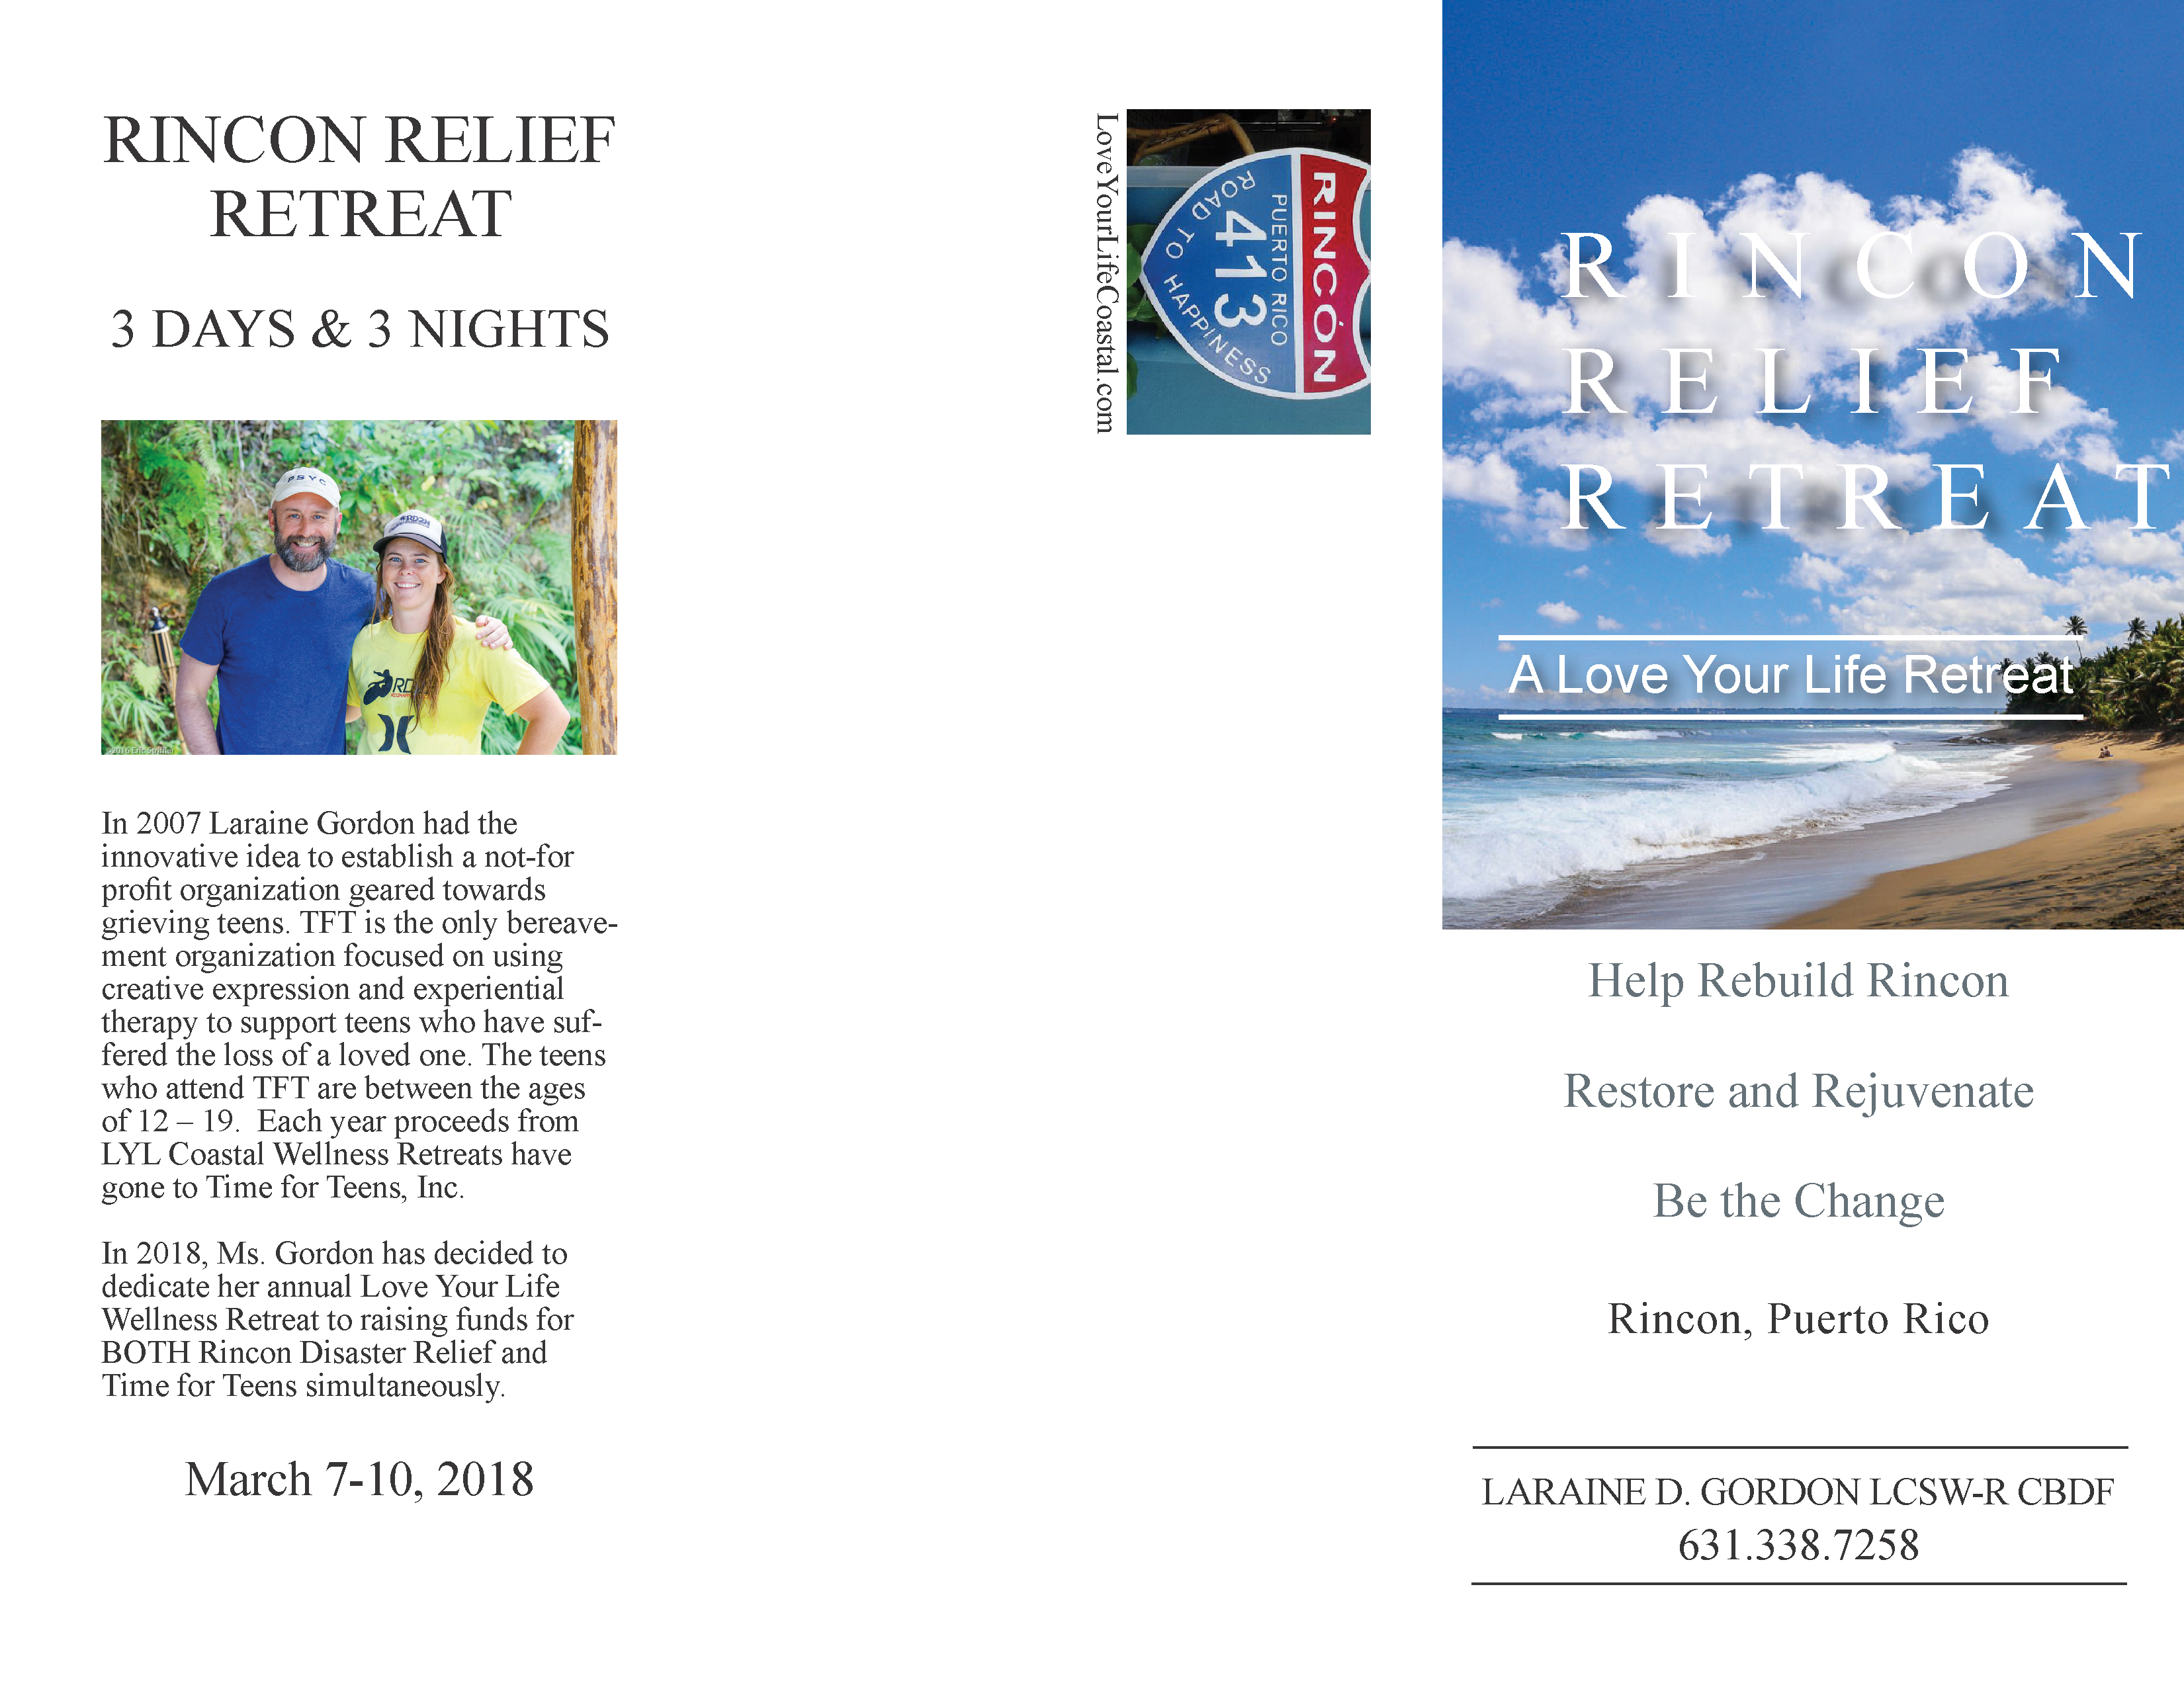 Rincon Relief Retreat flyer cover jpeg format-01